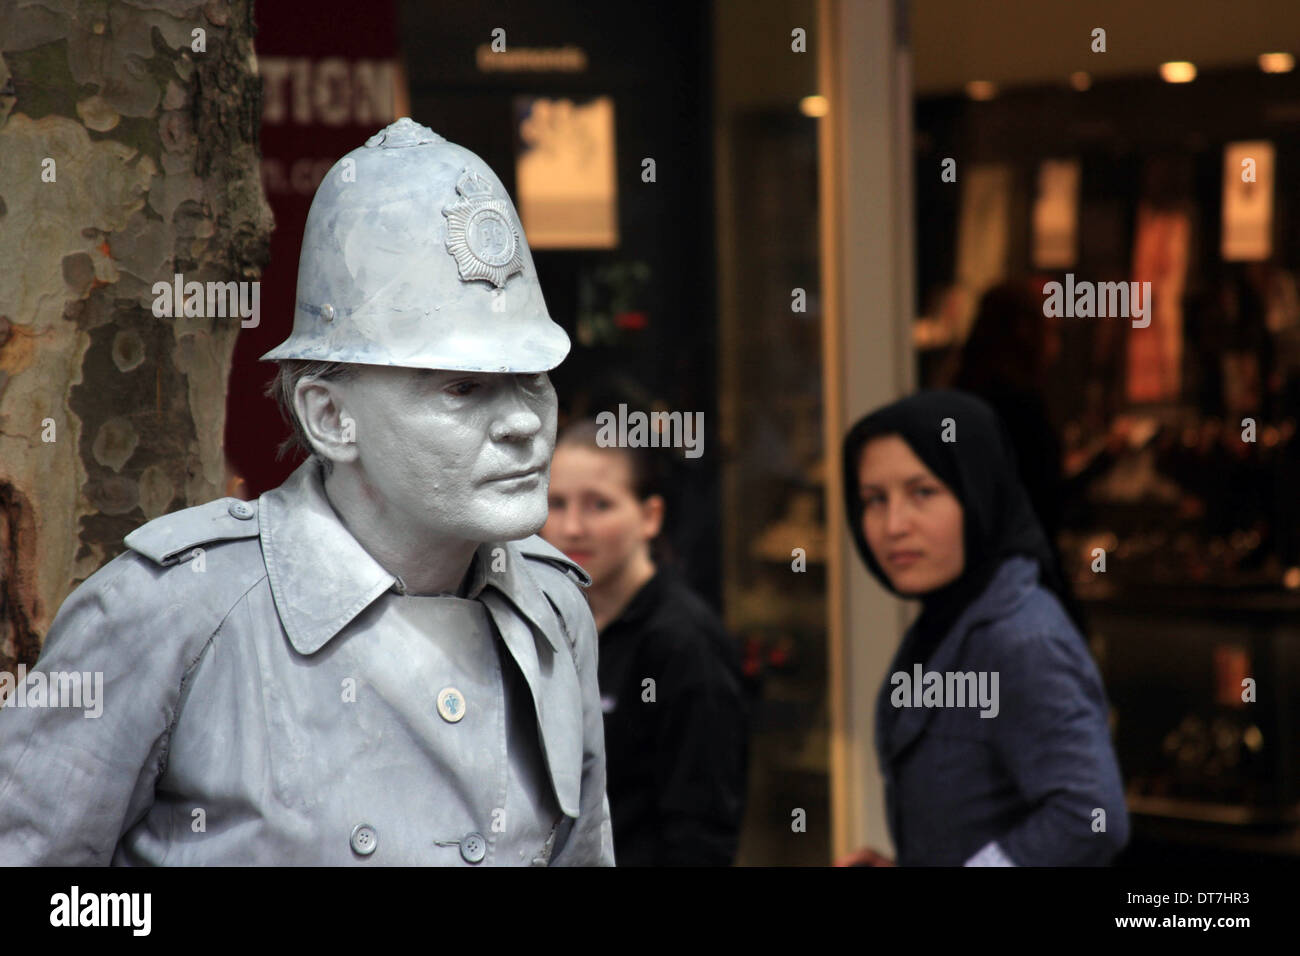 Street performer dressed as a policeman statue - Stock Image